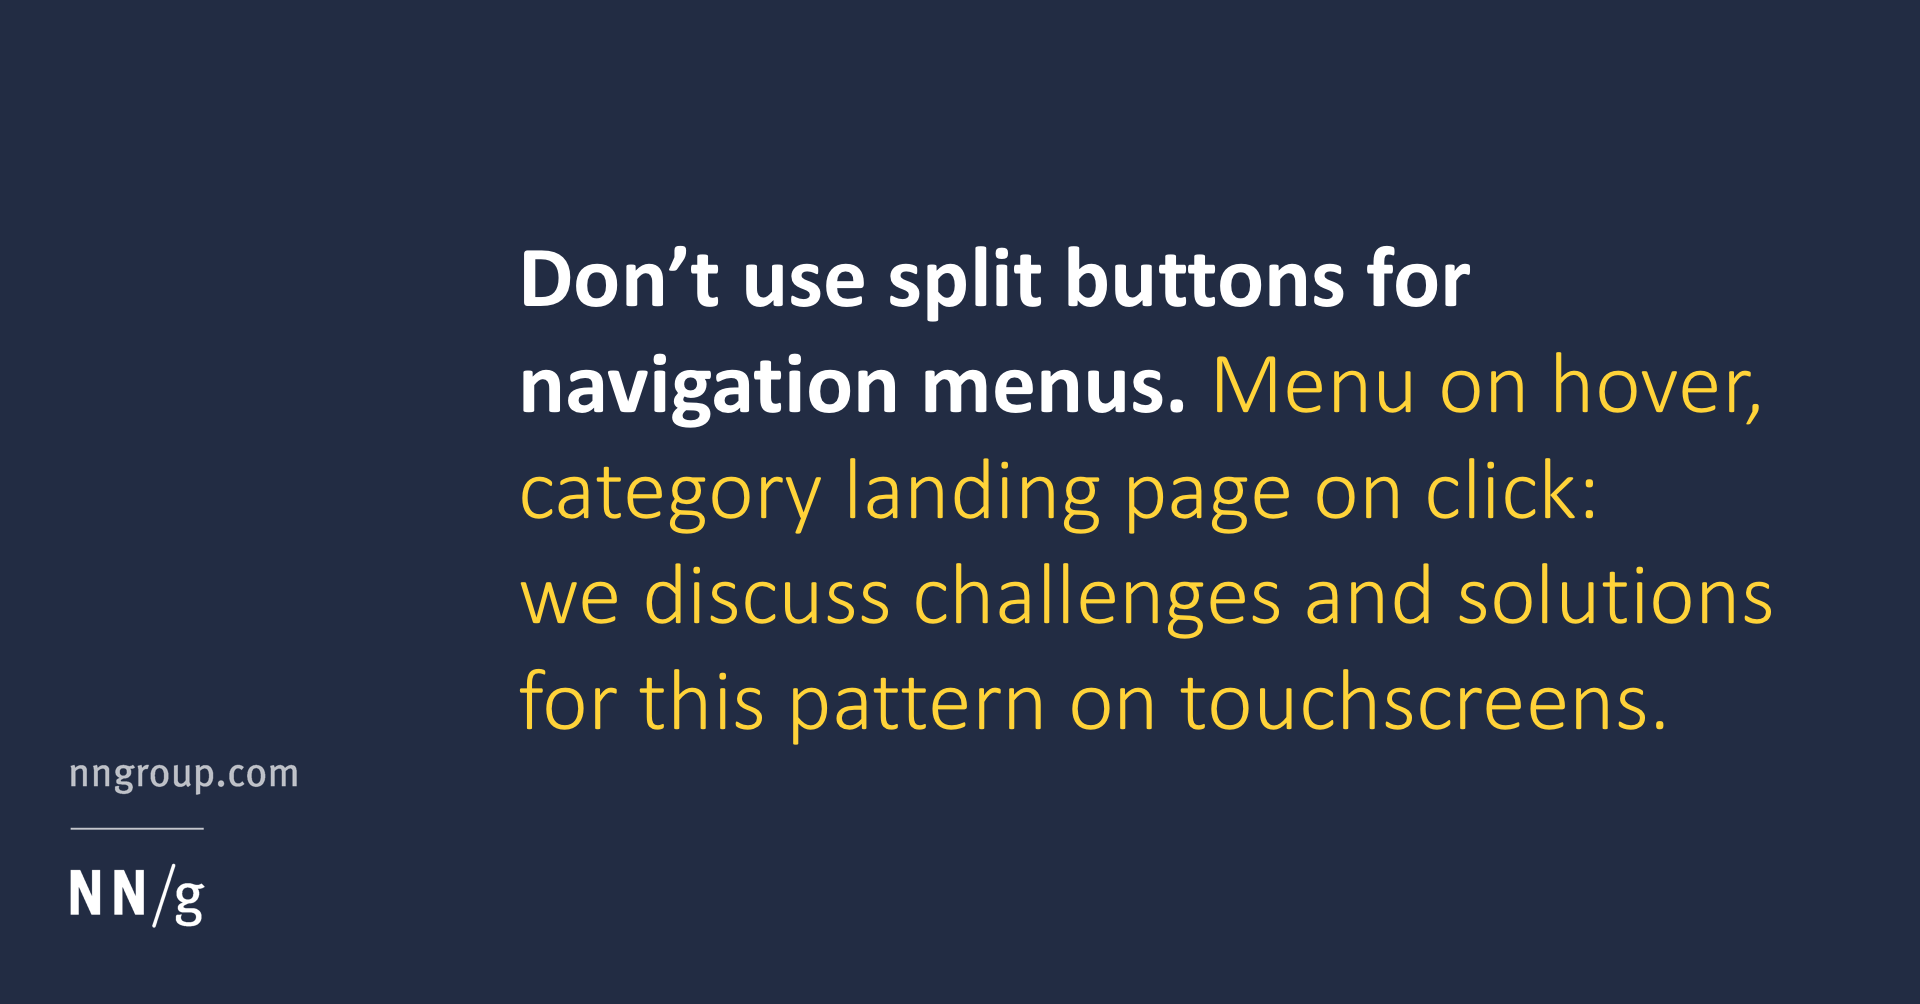 Don't Use Split Buttons for Navigation Menus